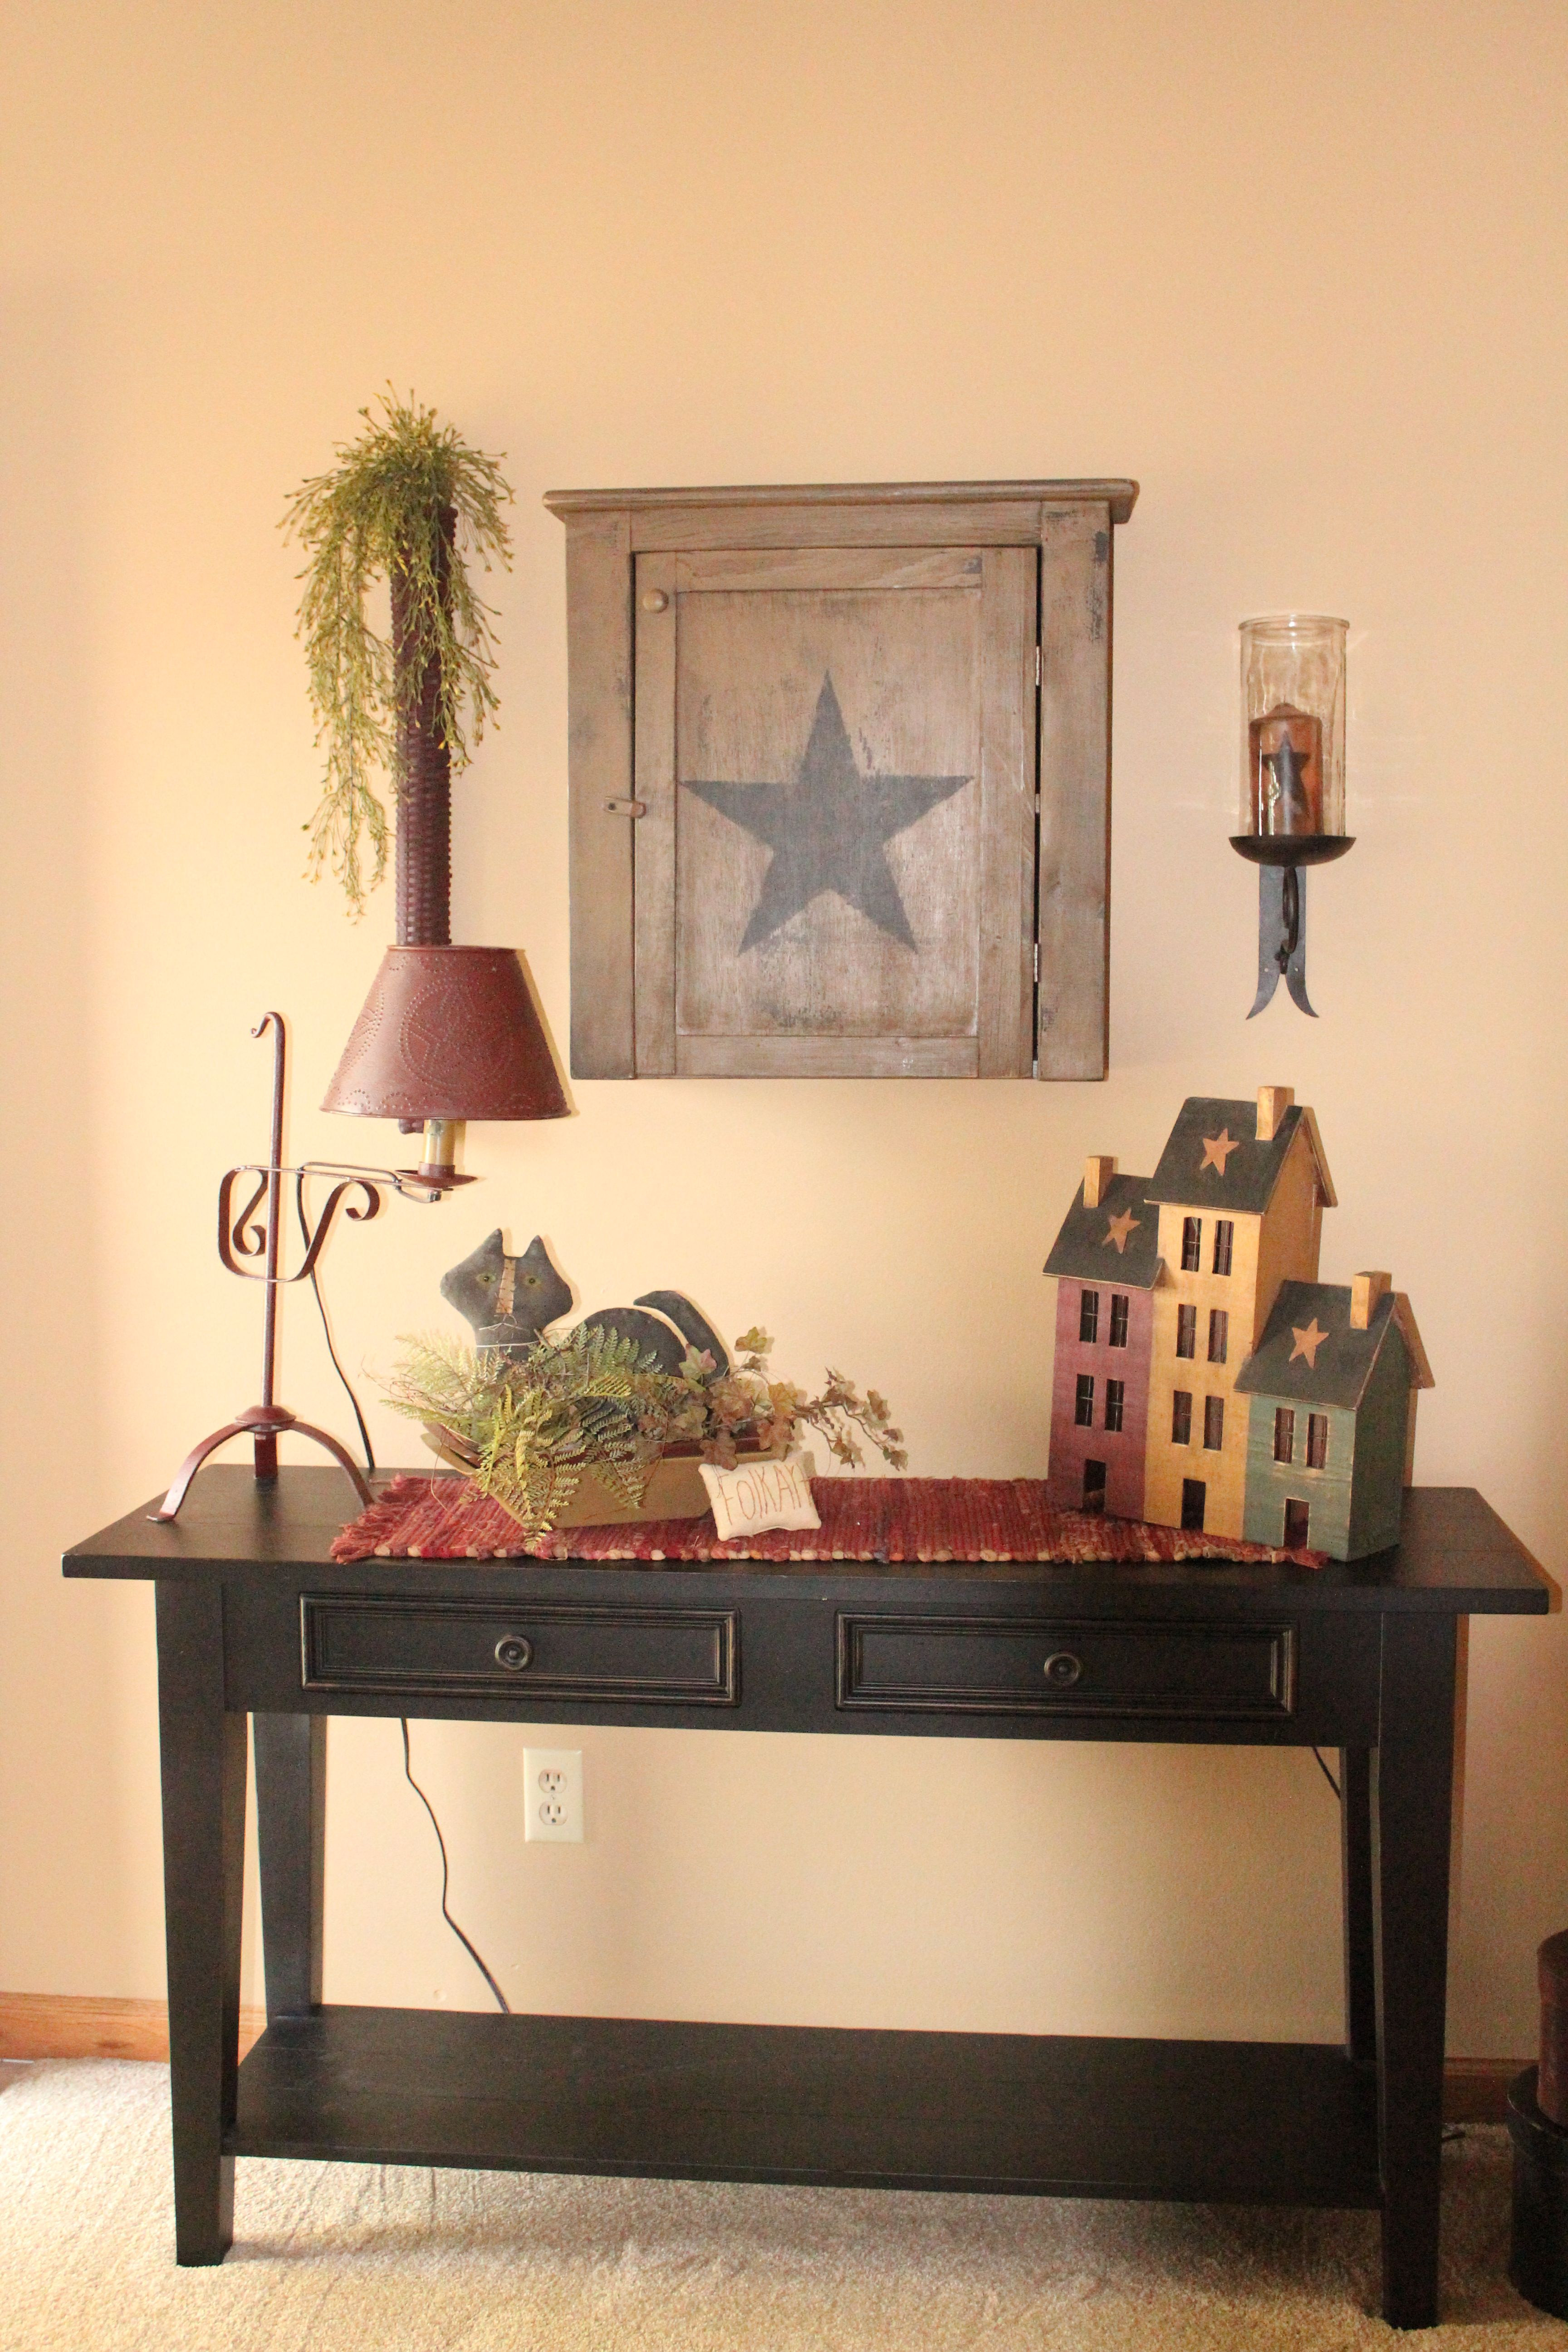 I Have A Table Just Like This In My Living Room Think Ill Re Decorate Fuse Box Country Primitive Decorating Cabinet Over